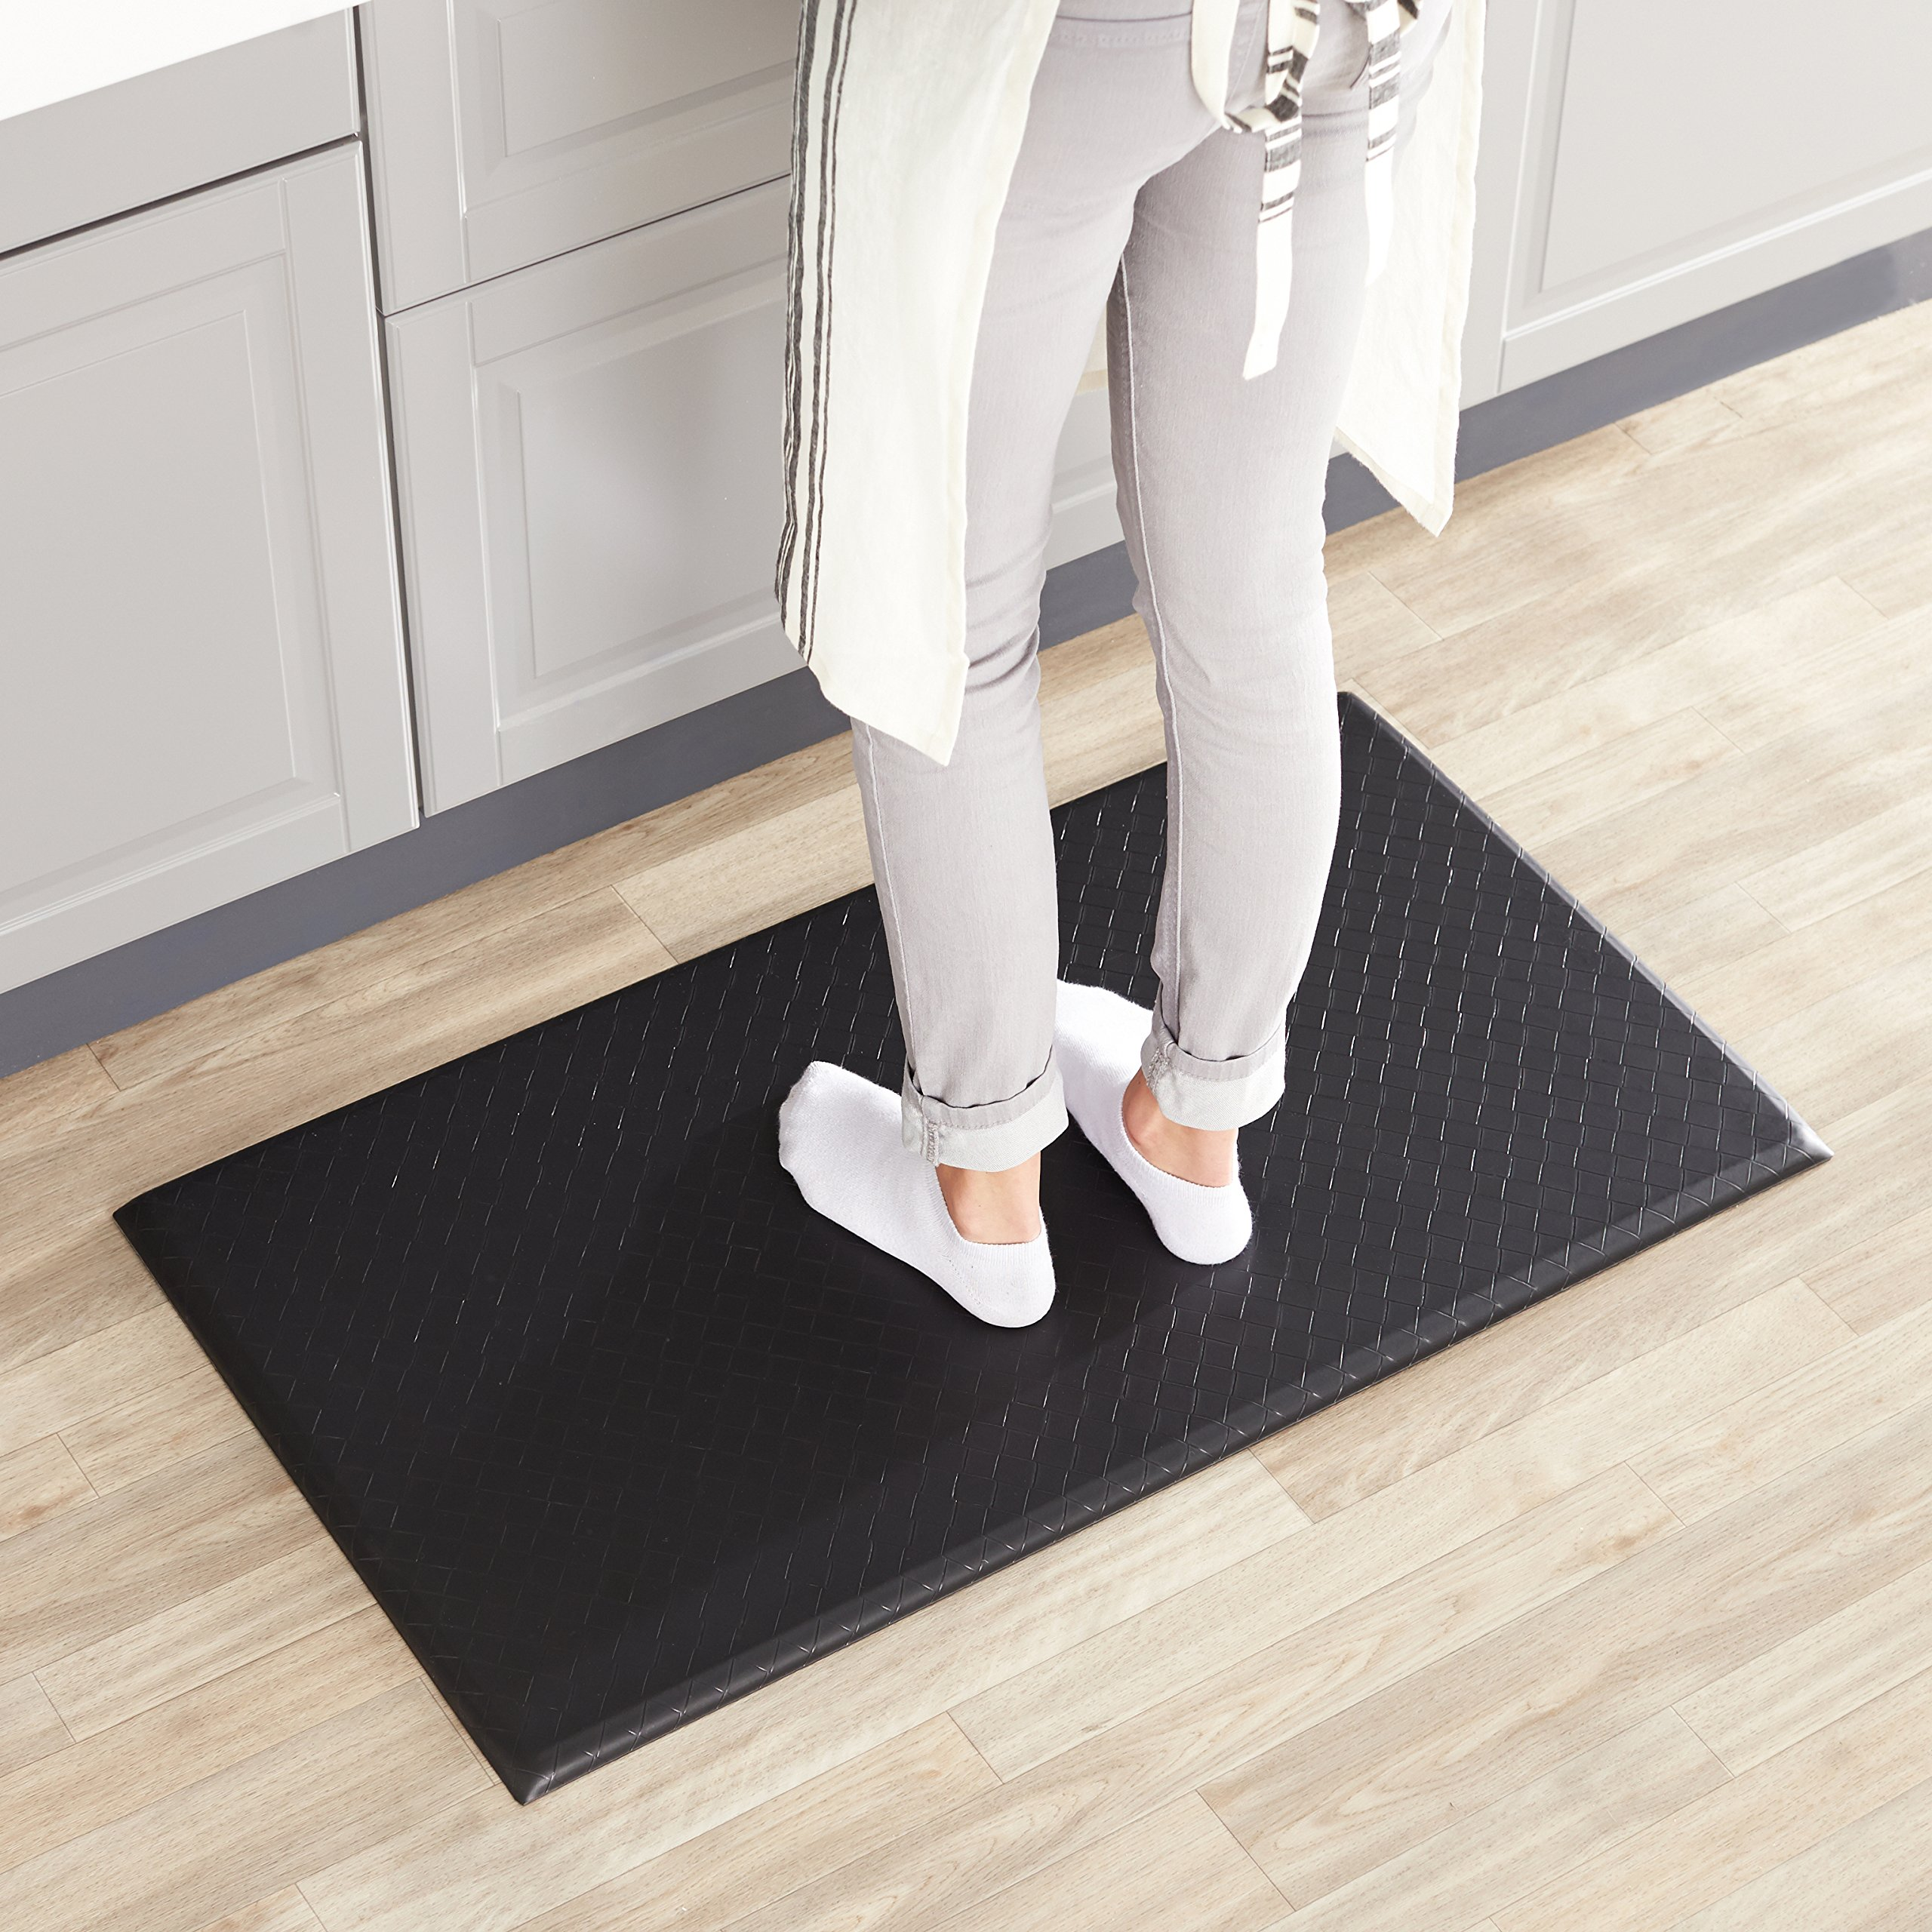 AmazonBasics Premium Anti-Fatigue Standing Comfort Mat for Home and Office - 20x36-Inches, Black by AmazonBasics (Image #2)